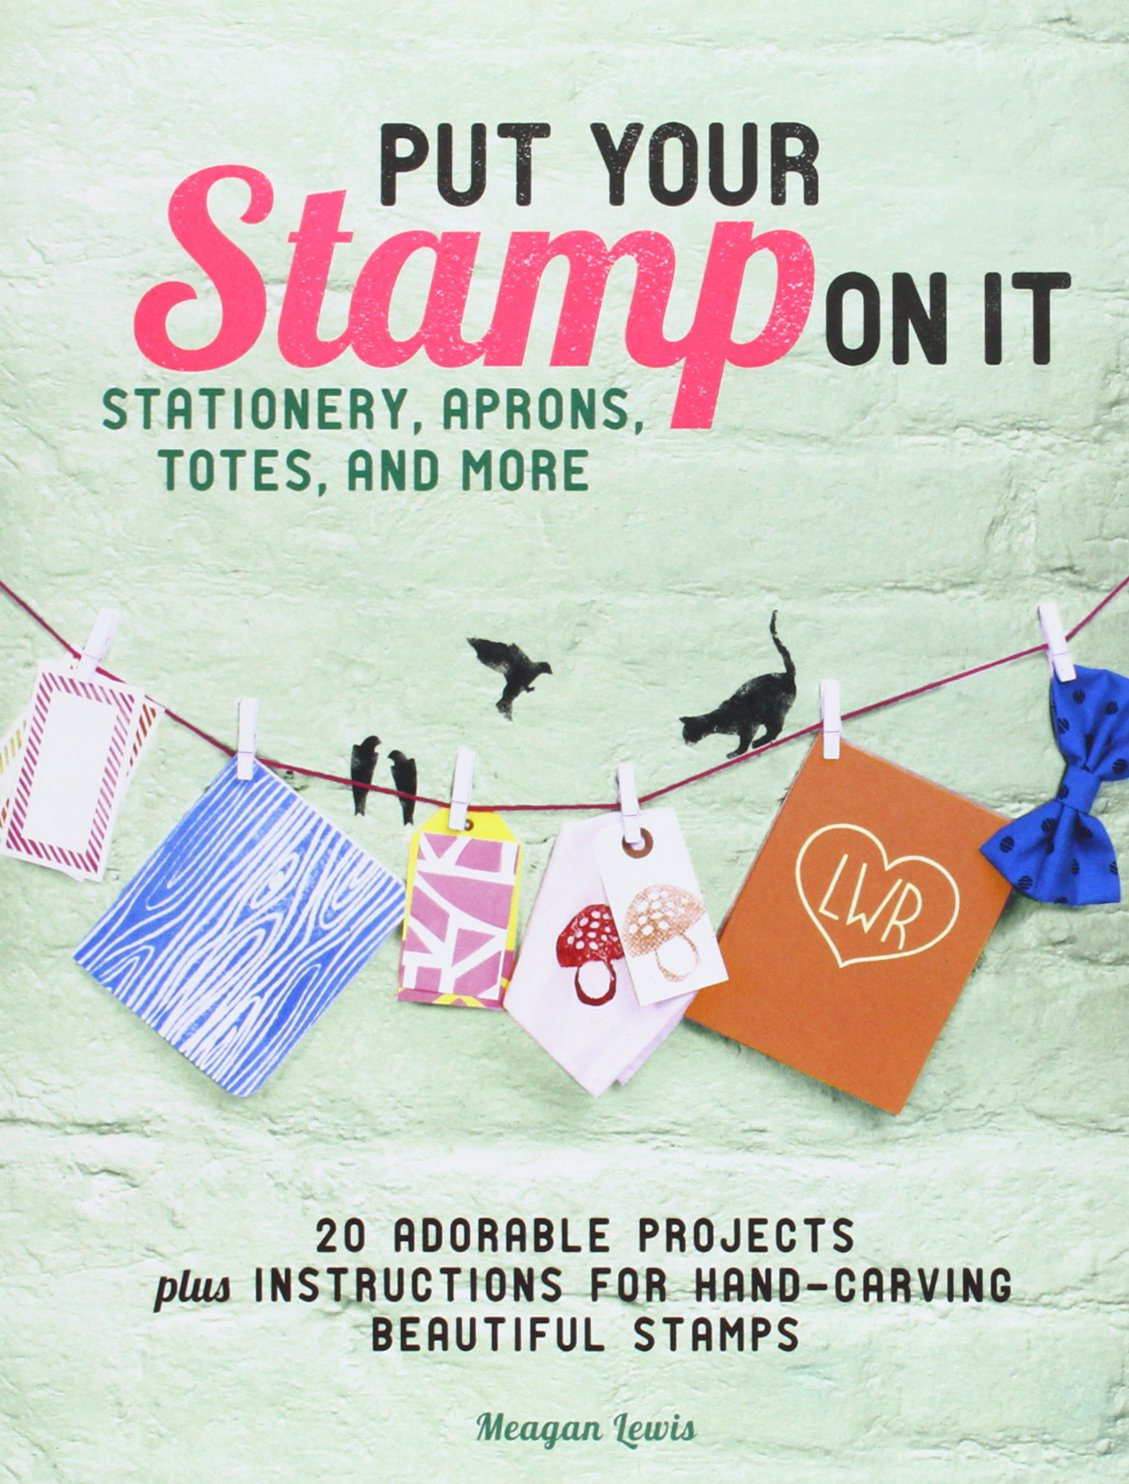 Put Your Stamp On It: Stationery, Aprons, Totes, and More by Megan Lewis